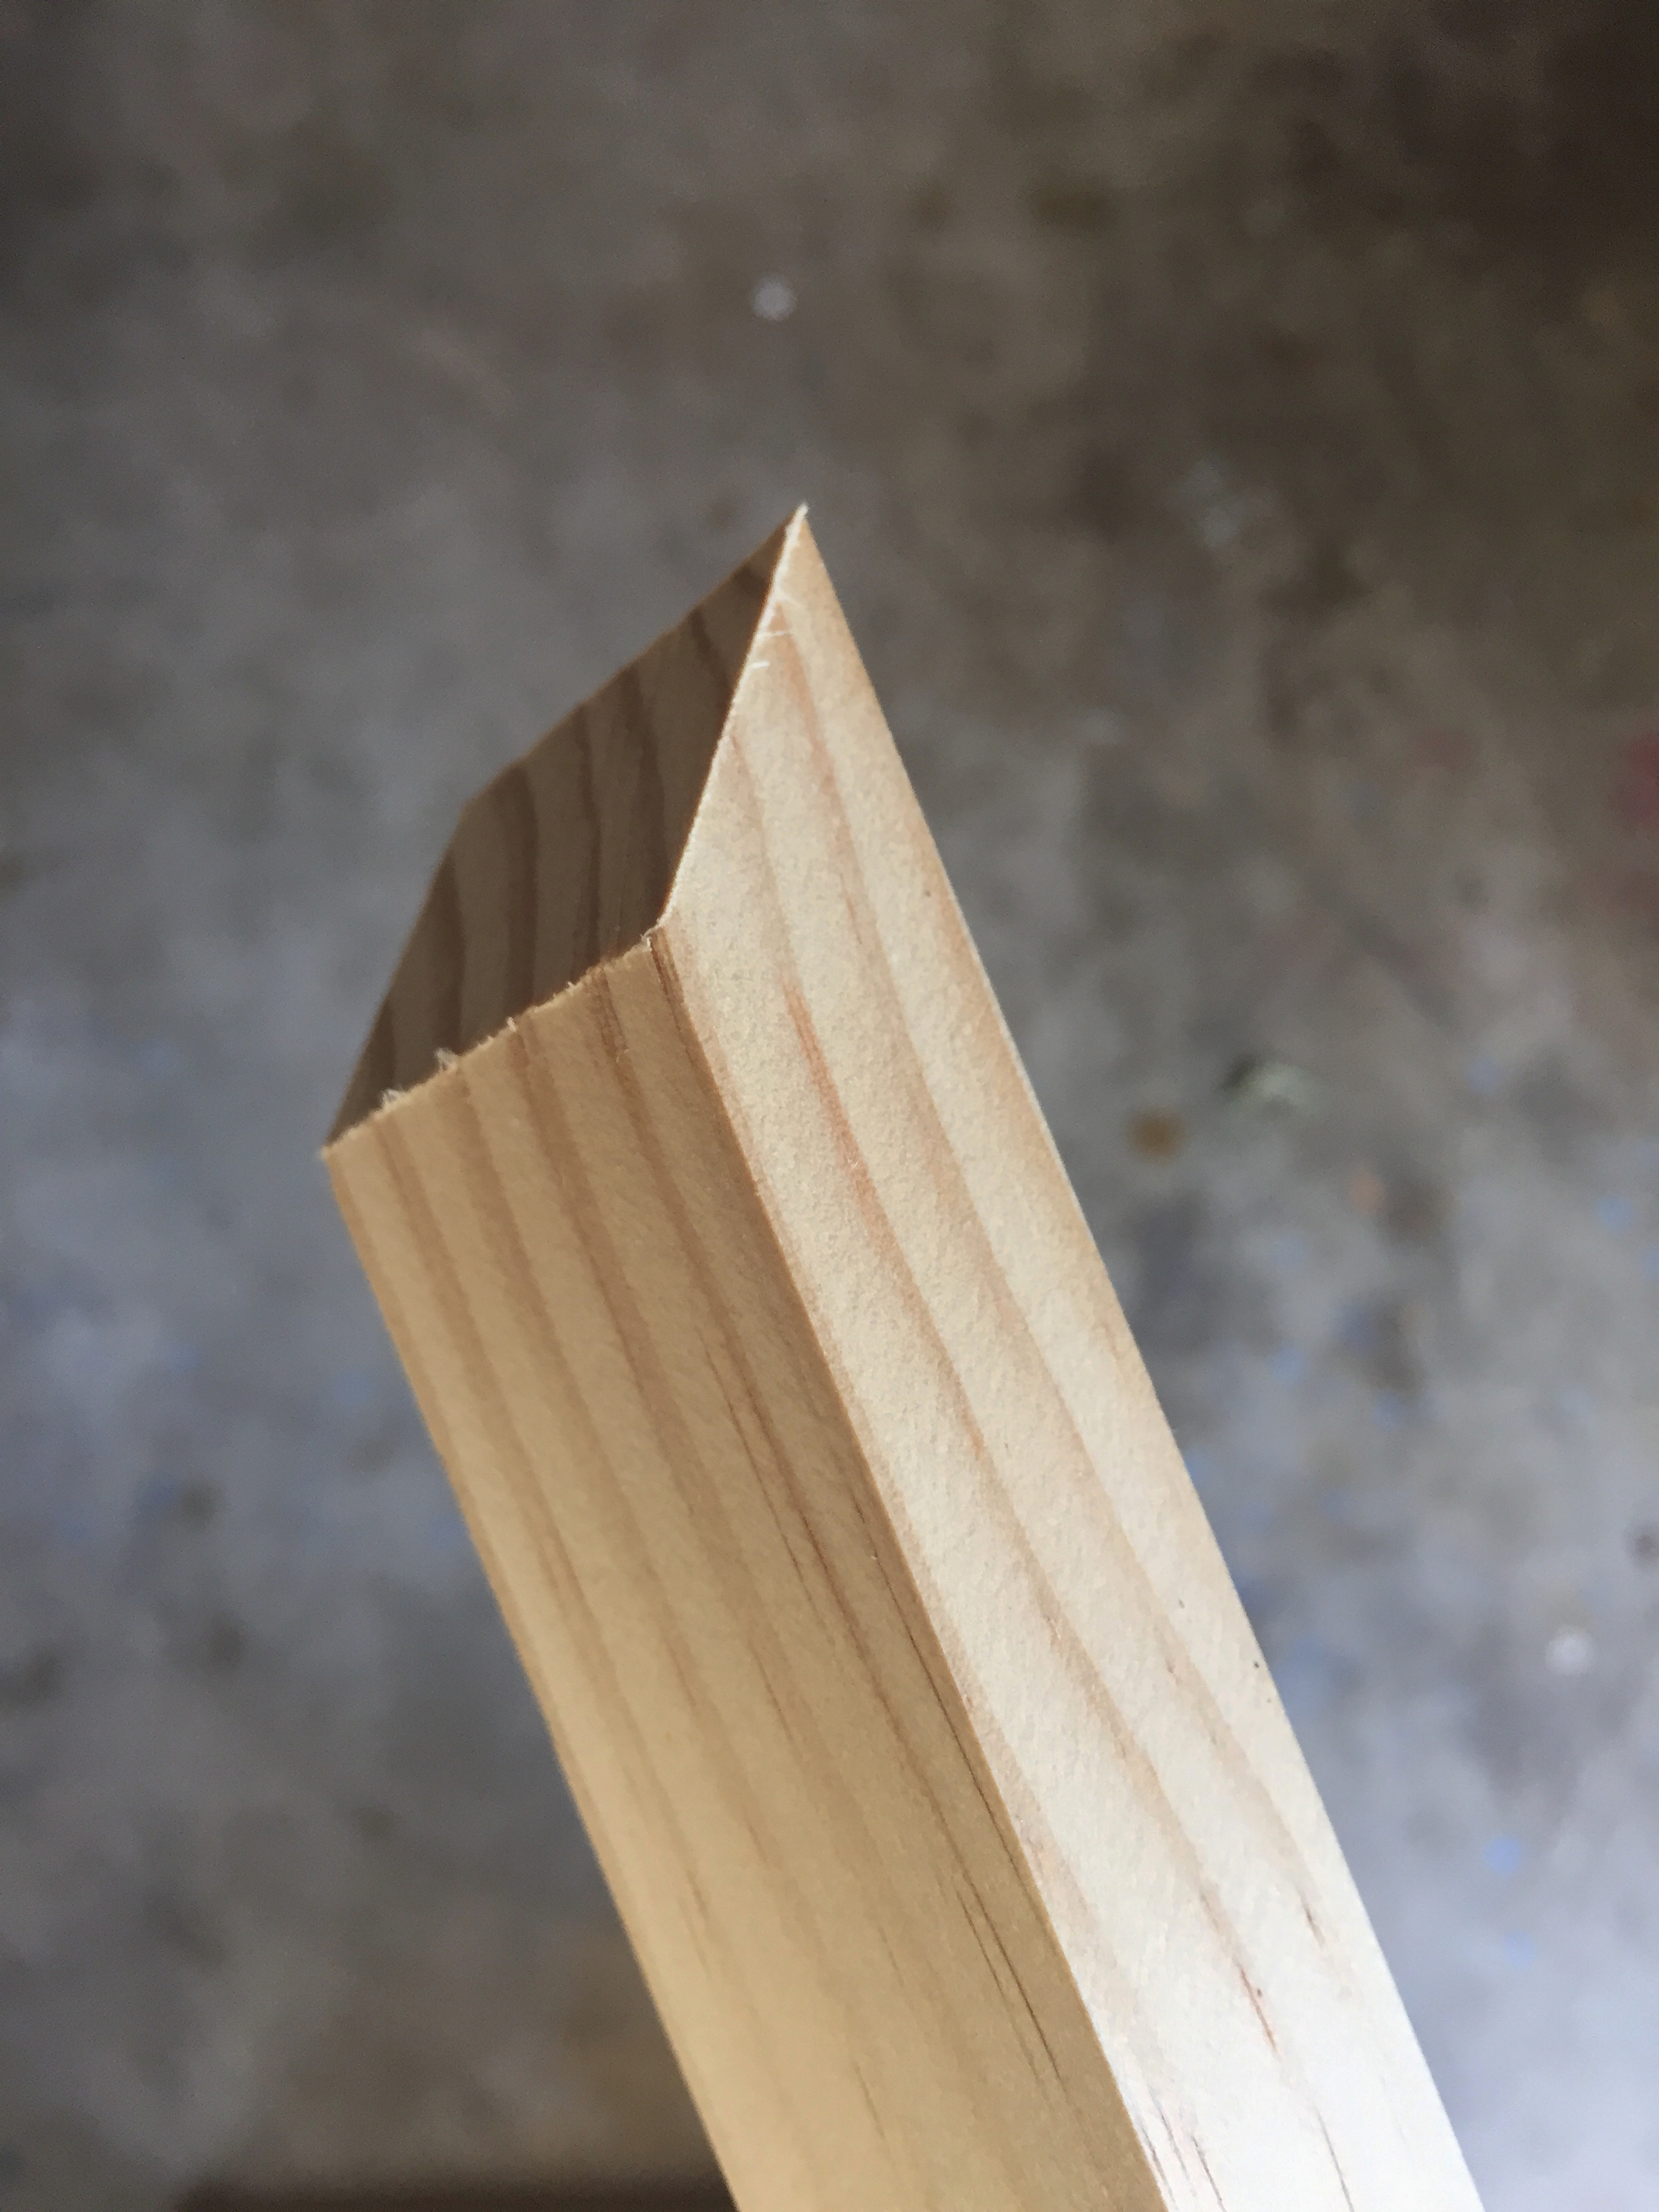 45 Degree Angle on all the Trim Pieces